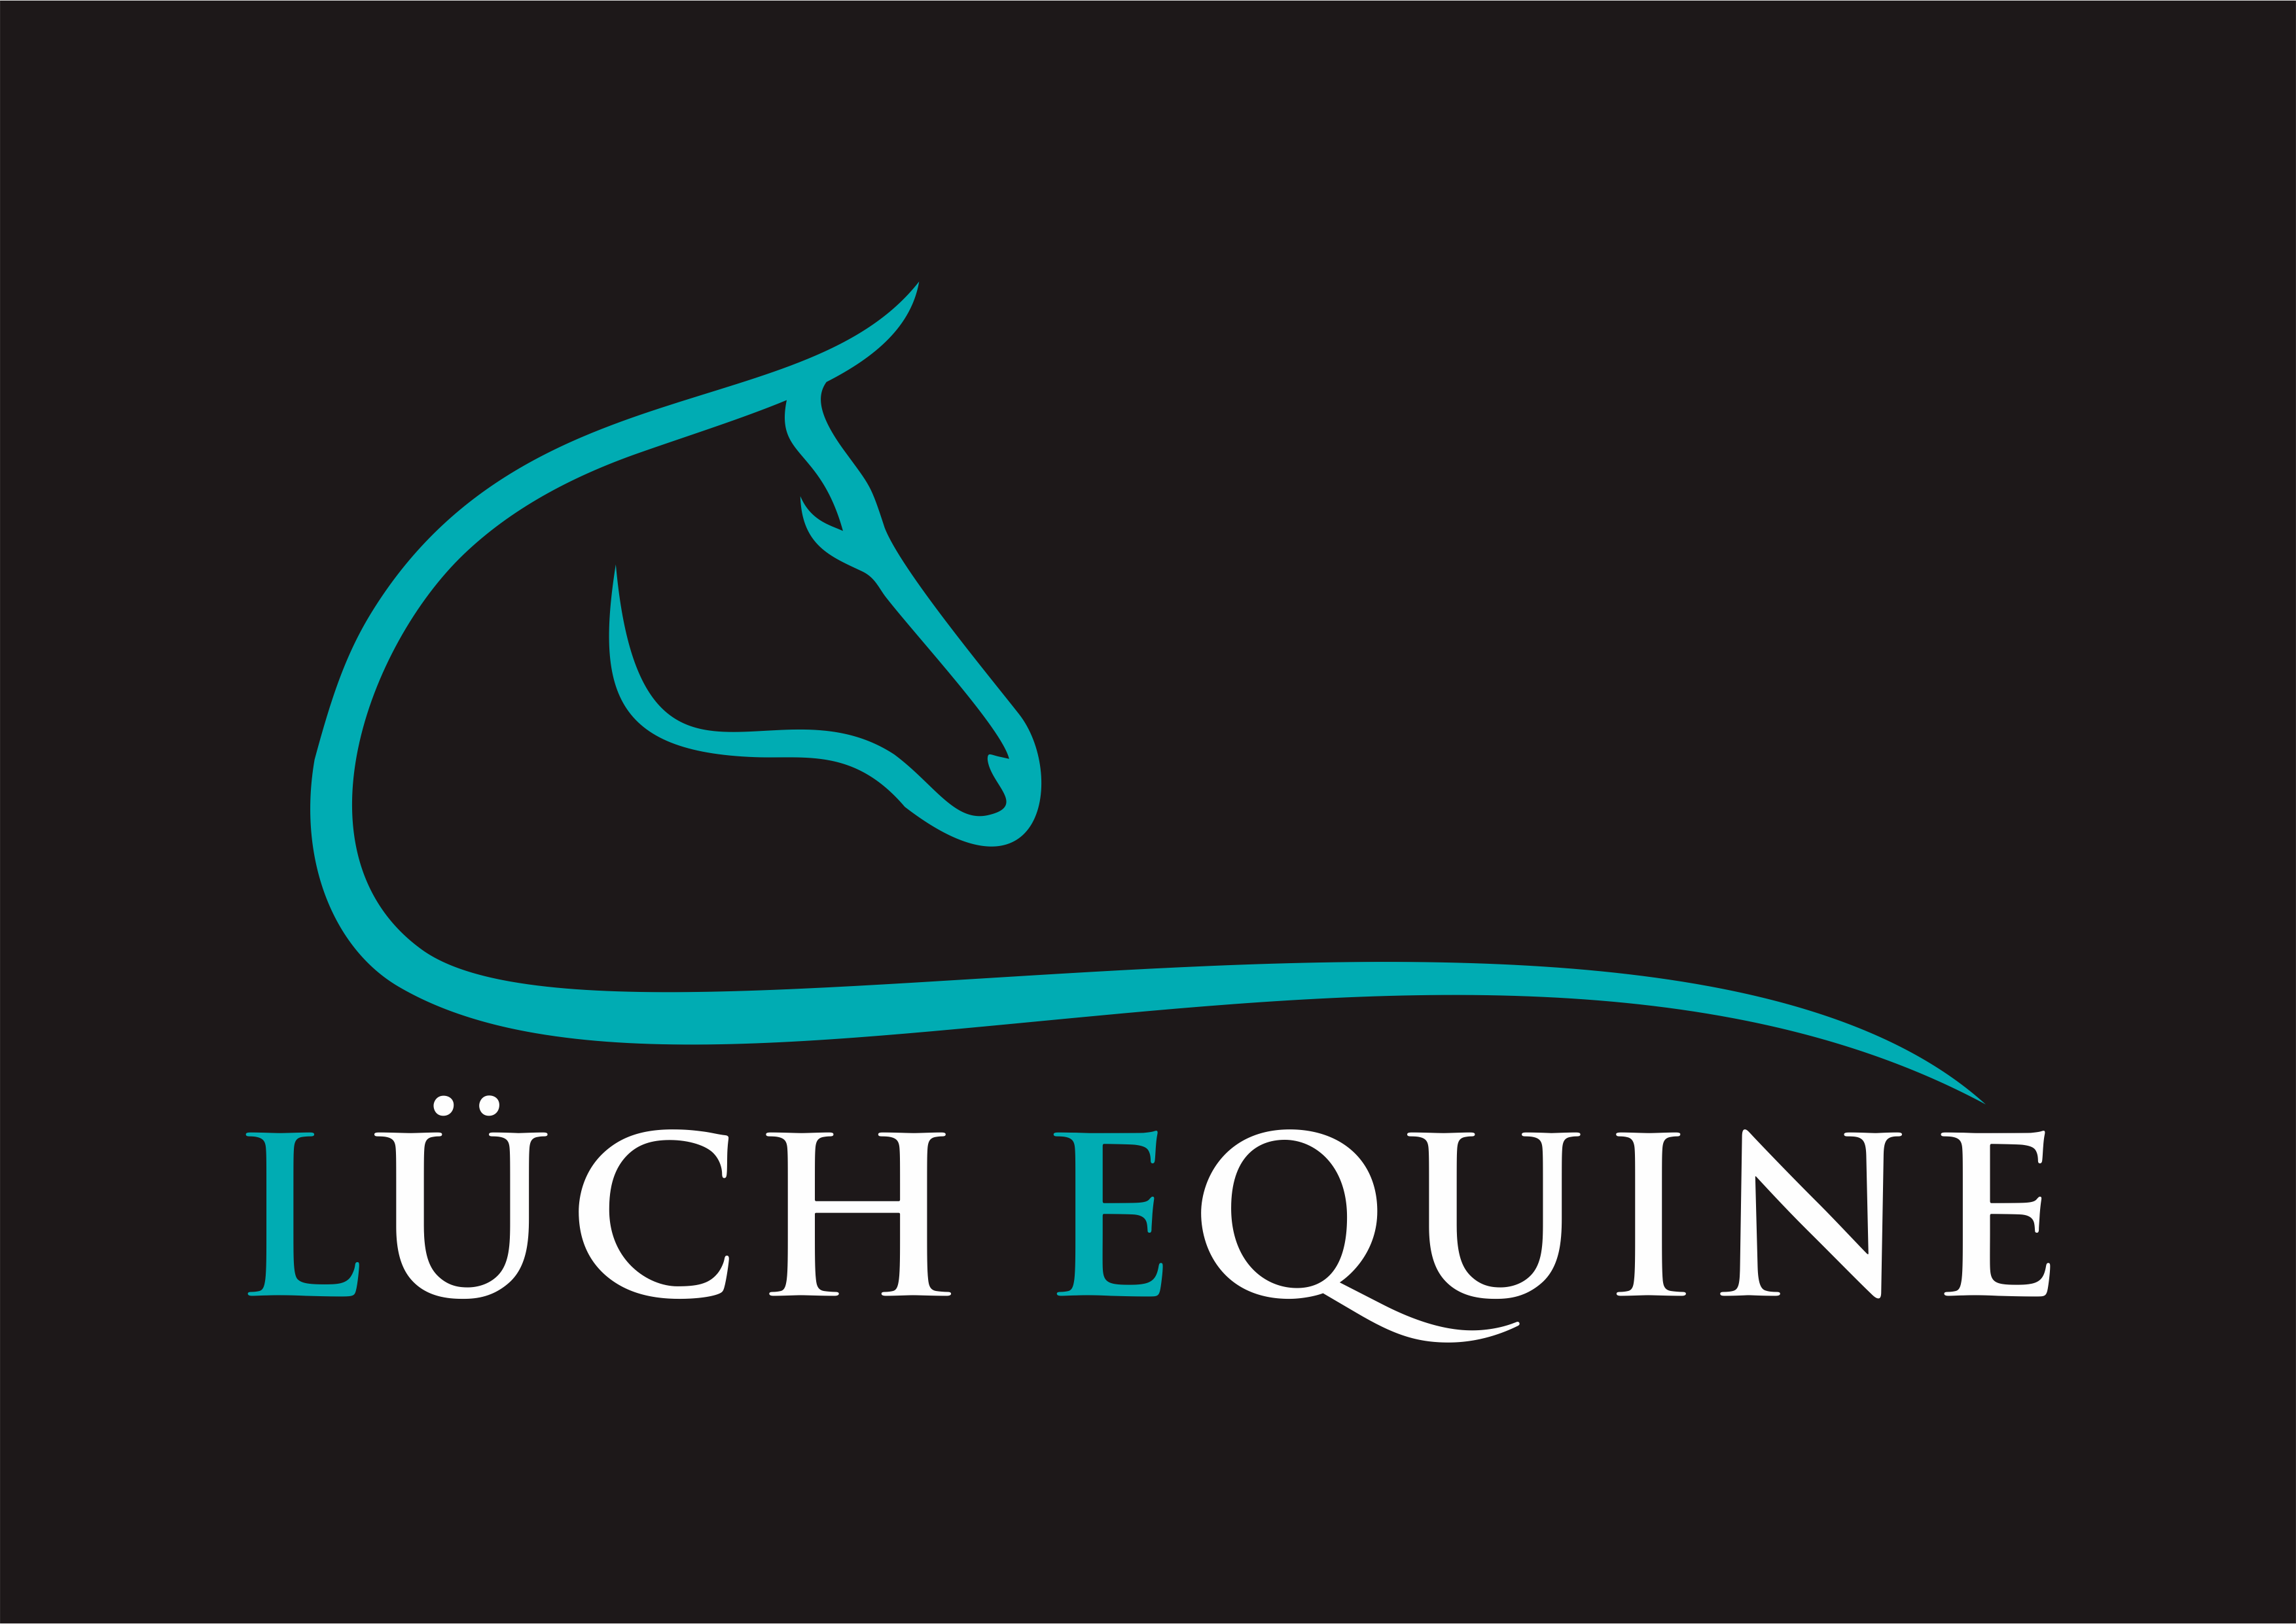 Create a steezy logo for an exciting equestrian business!